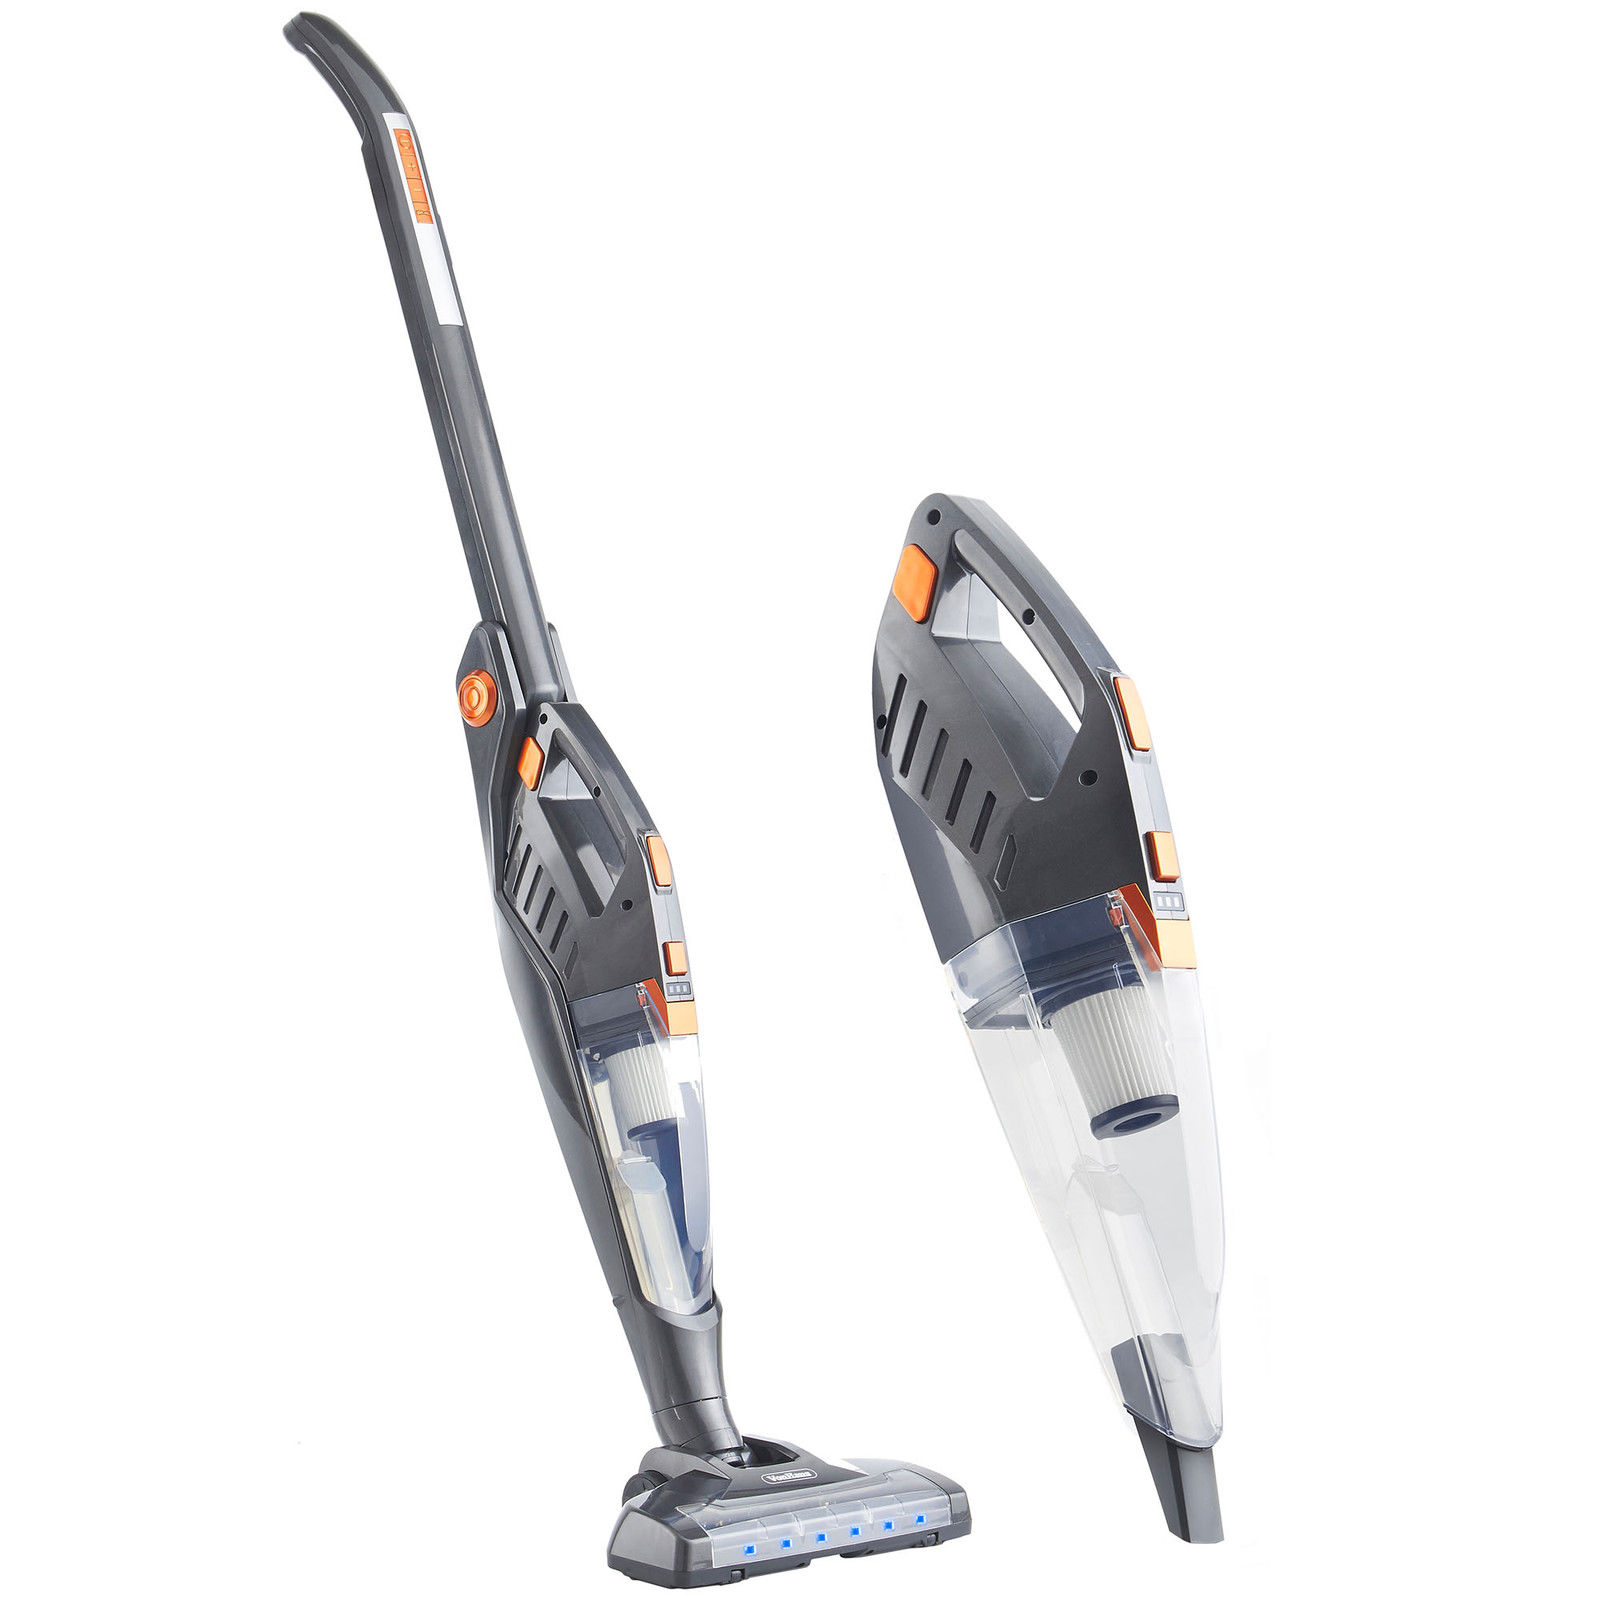 vonhaus folding 2 in 1 cordless stick vacuum cleaner 22 2v battery accessories ebay. Black Bedroom Furniture Sets. Home Design Ideas